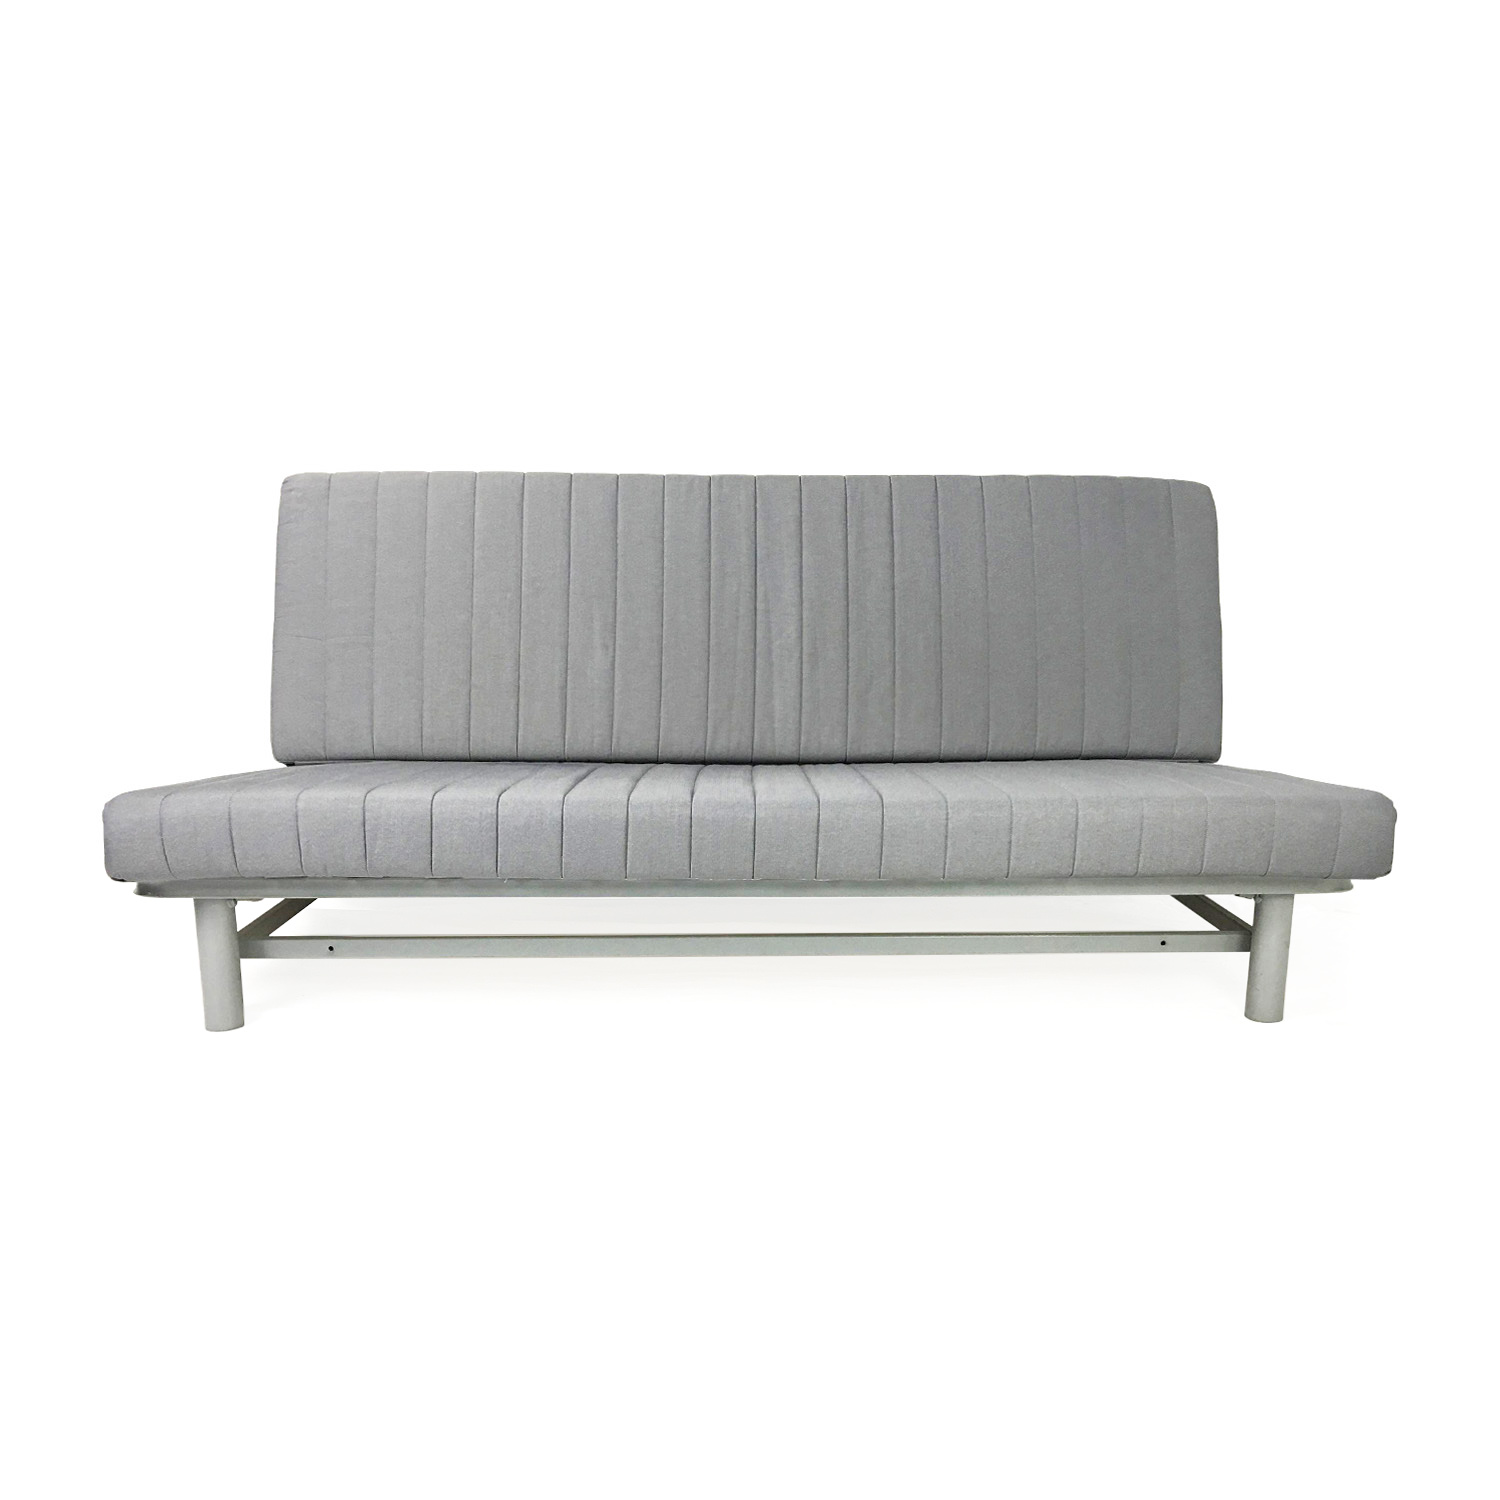 Ikea bed sofas backabro sofa bed with chaise longue ramna for Sofa bed queen ikea